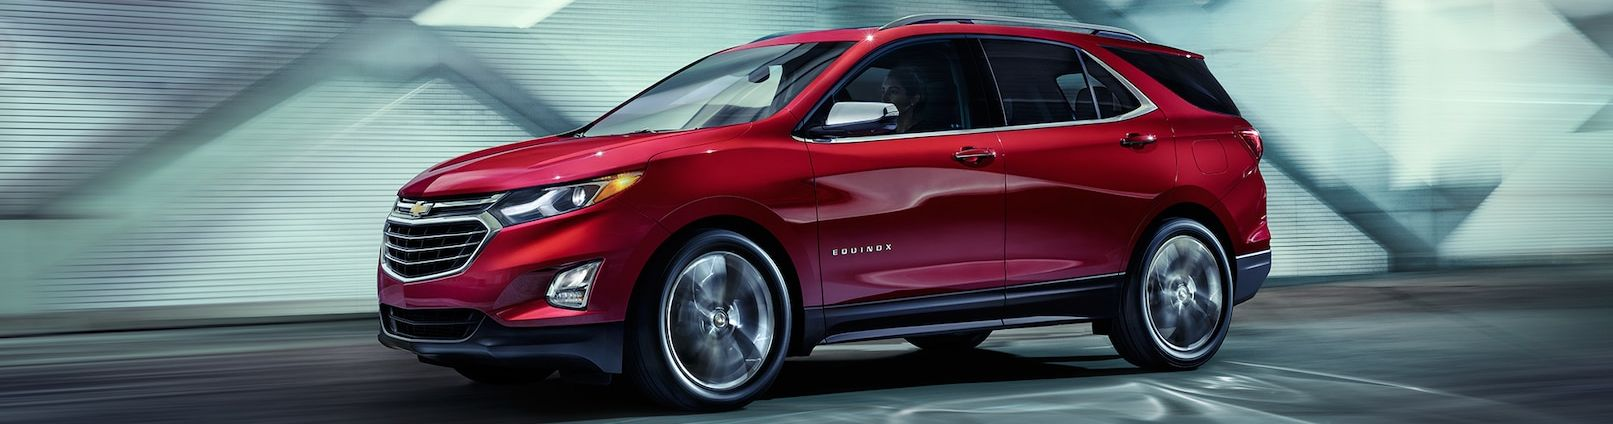 2019 Chevrolet Equinox Financing near Schererville, IN